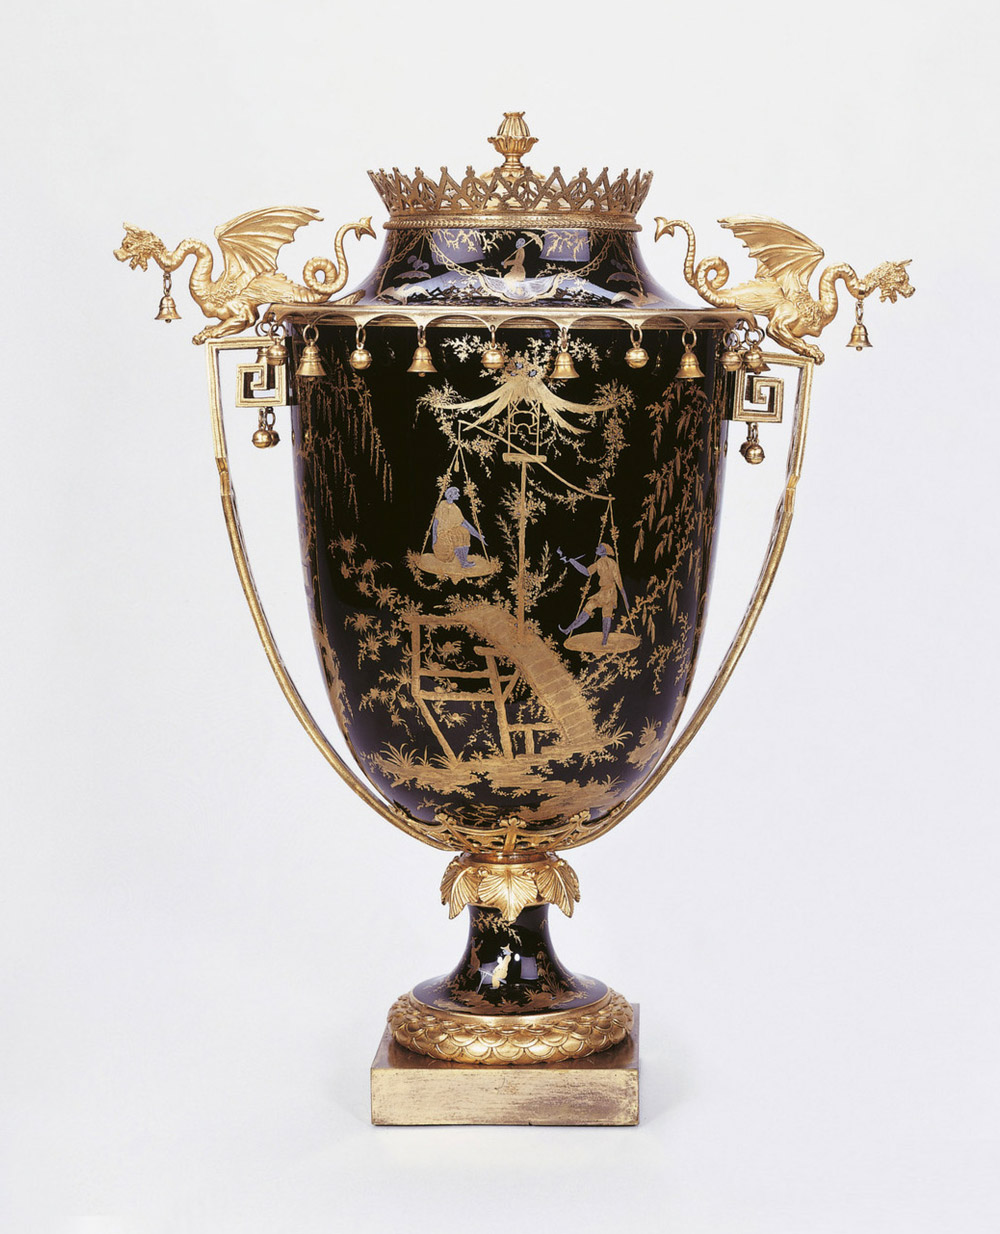 Sèvres Vase à monter, one of a pair, 1790-92. (Royal Collection Trust/© Her Majesty Queen Elizabeth II 2017. RCIN 2347)